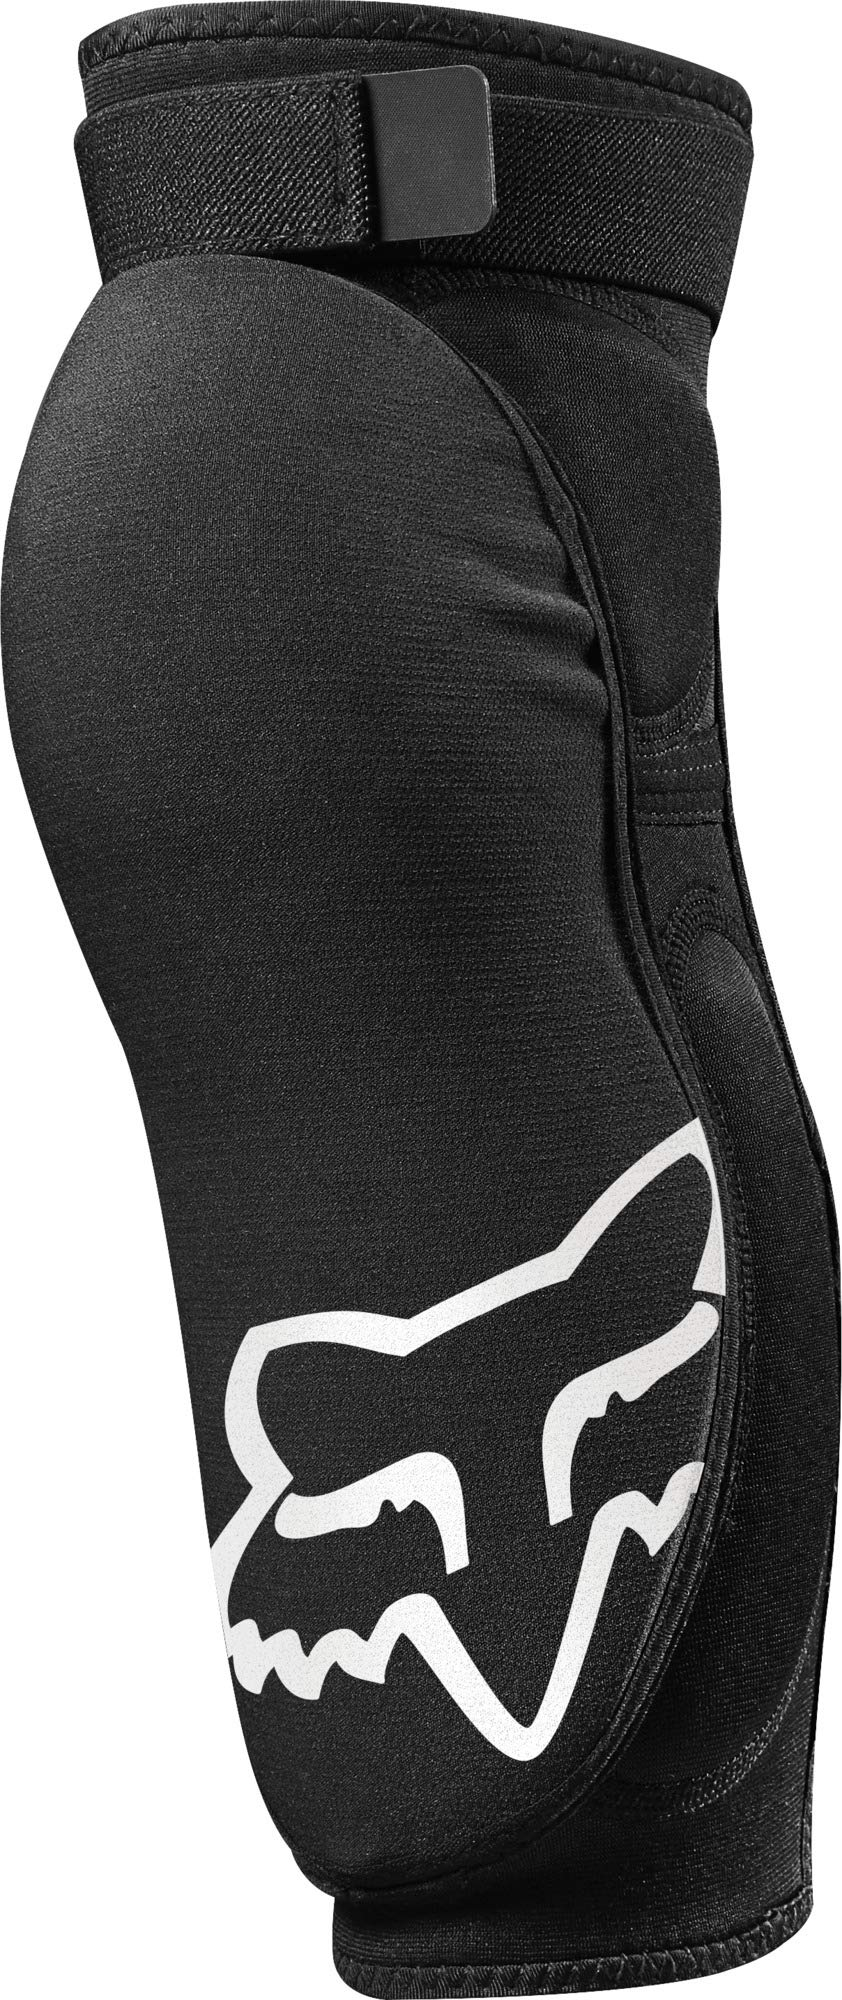 Fox Racing Launch Pro Elbow Guard (Black, Small) by Fox Racing